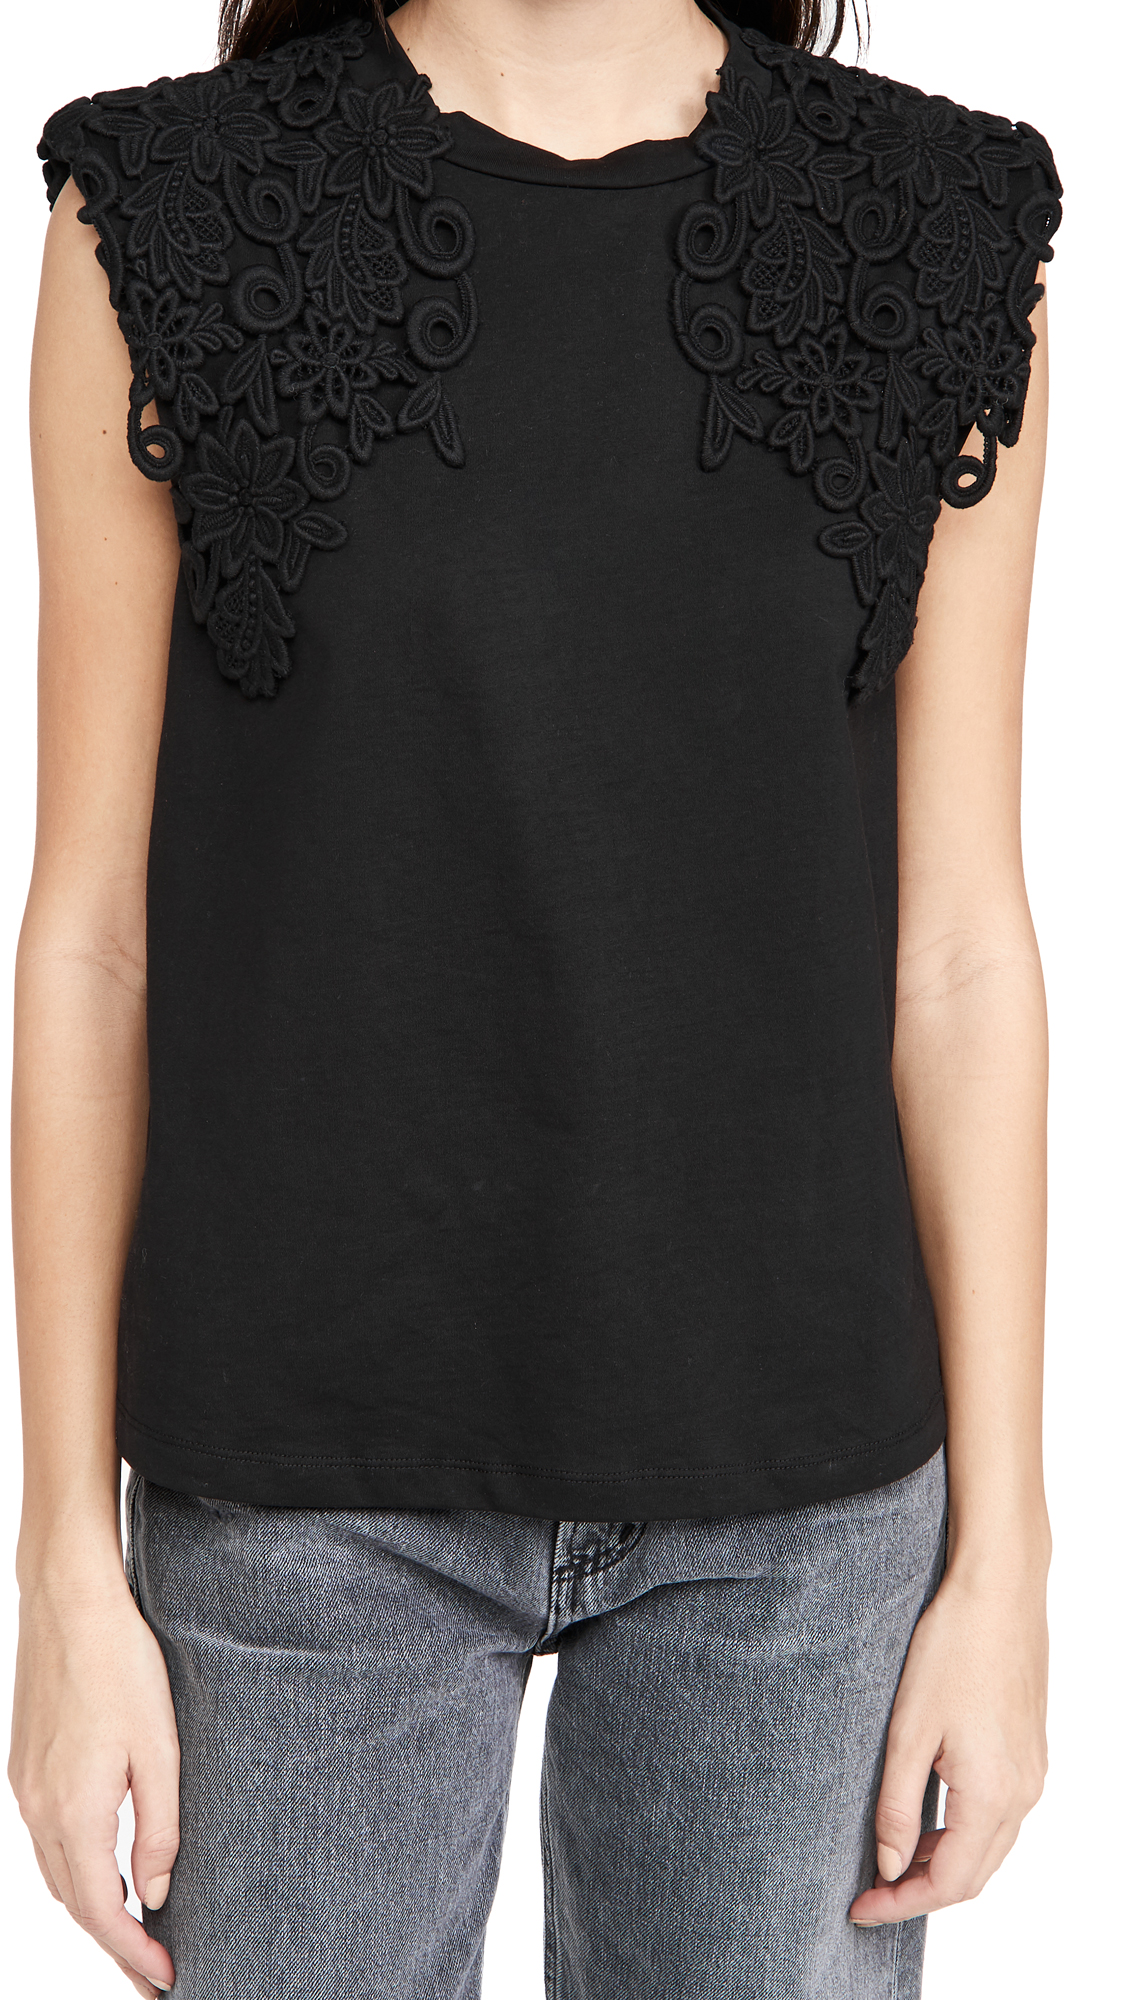 Sea Lace Applique Tee